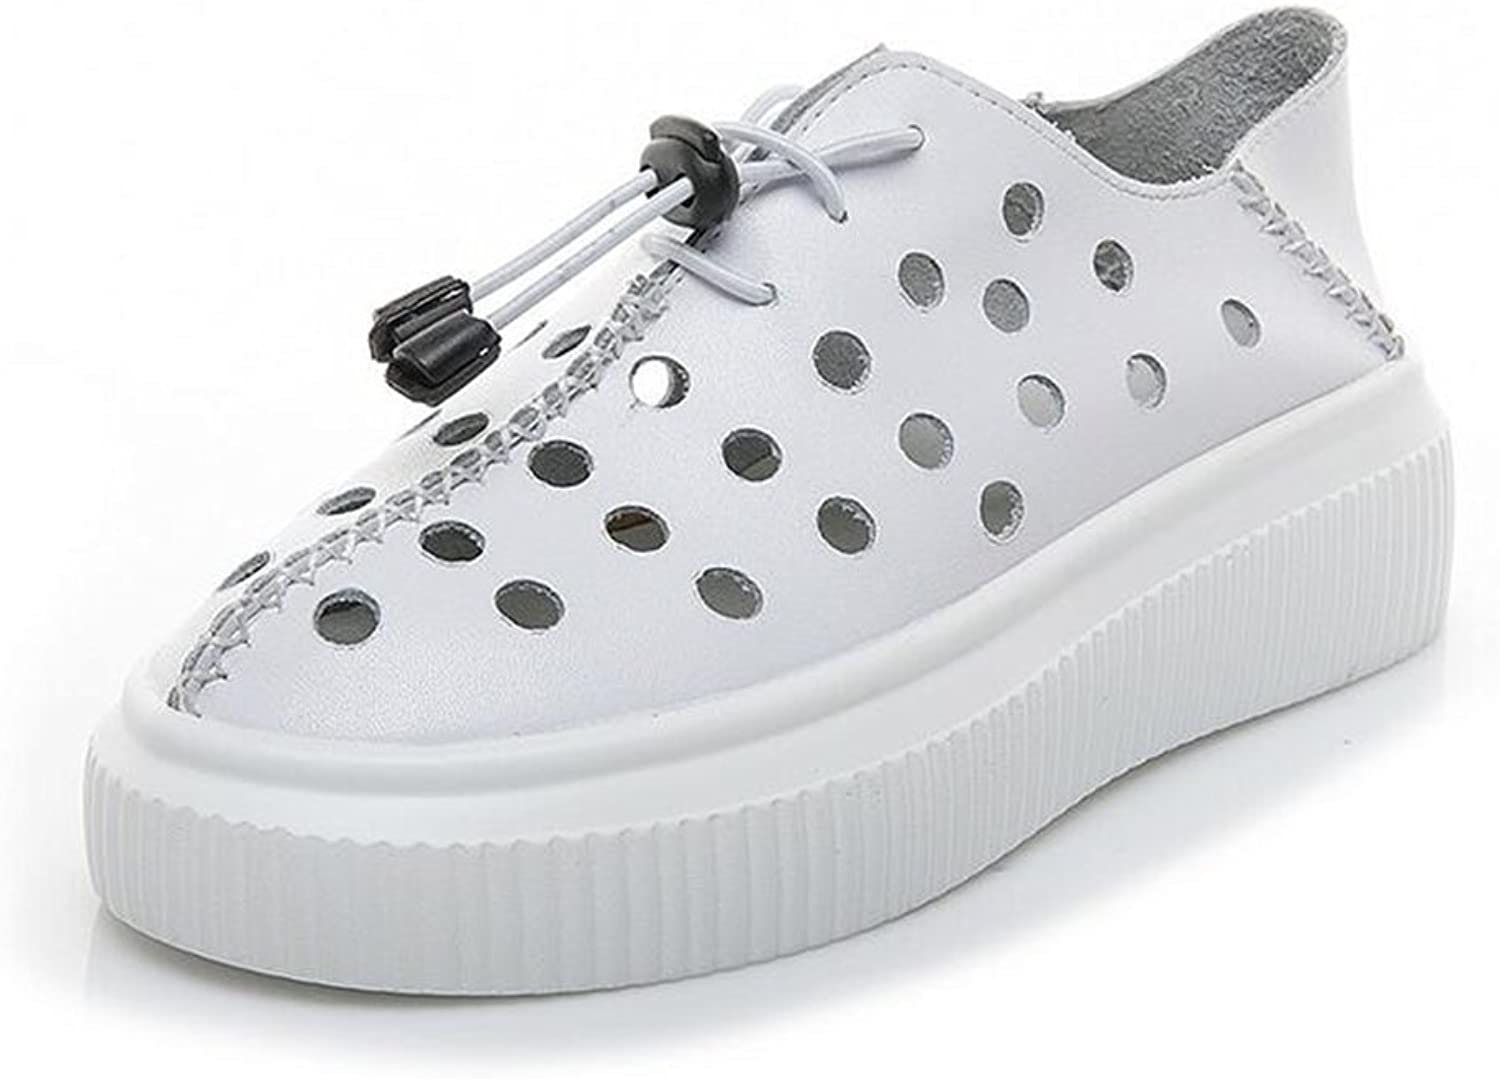 Exing Womens's shoes Hollow Hole Little White shoes,New Leather Casual shoes,Summer Fall New Sneakers,Deck shoes